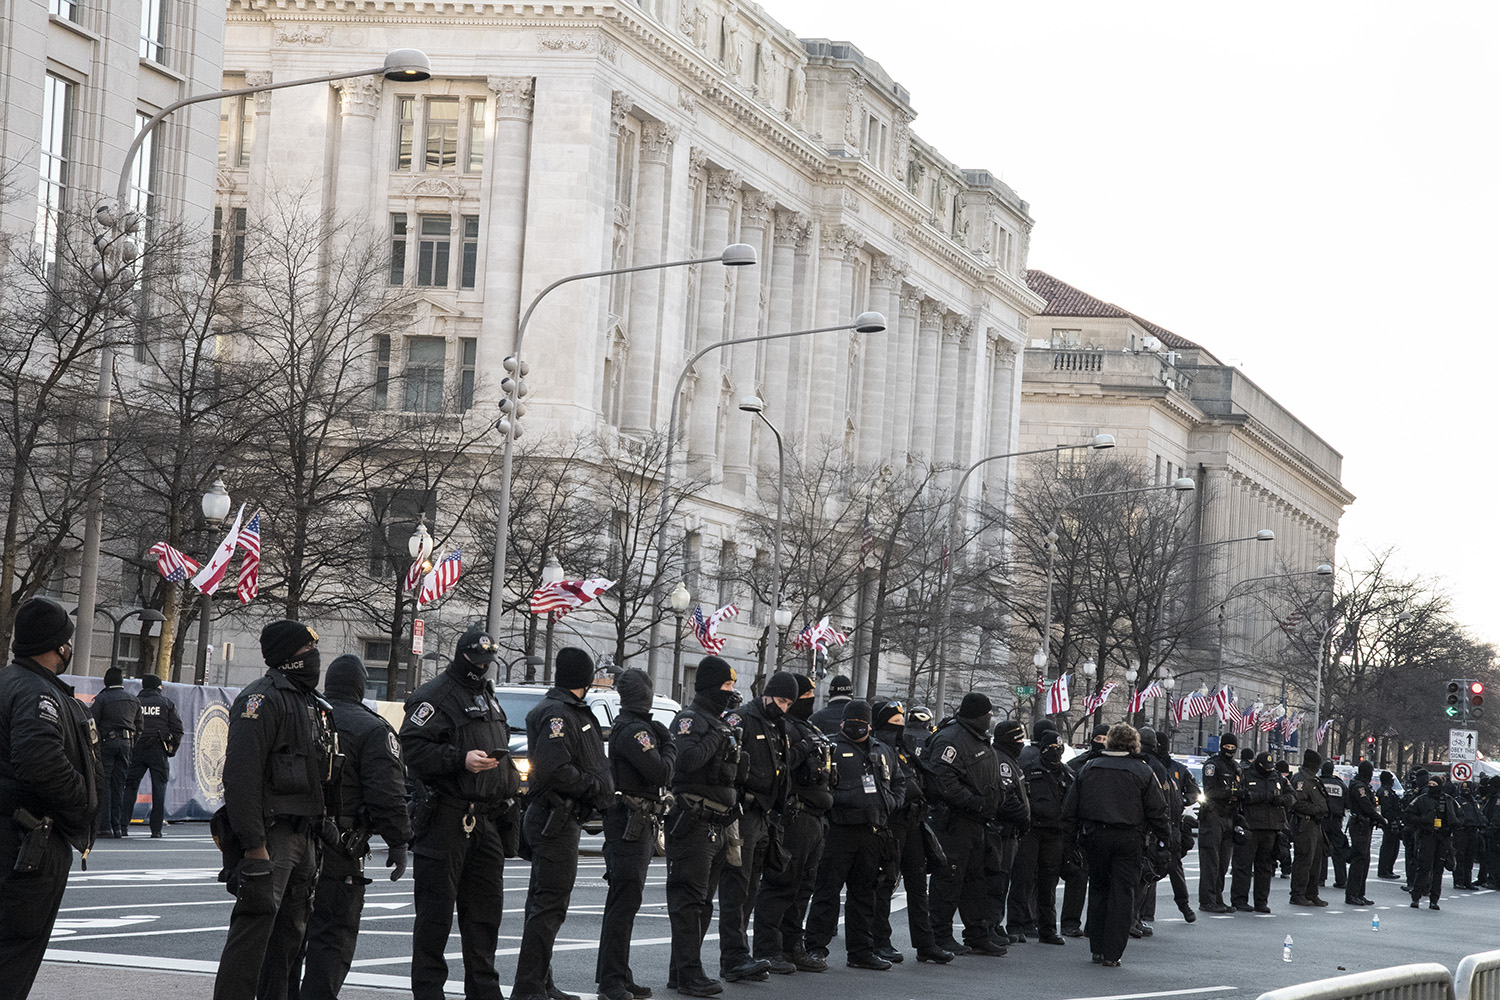 A line of police officers, most wearing black winter hates and black face coverings, line the street in front of the white stone buildings along Pennsylvania Avenue in Washington, D.C.